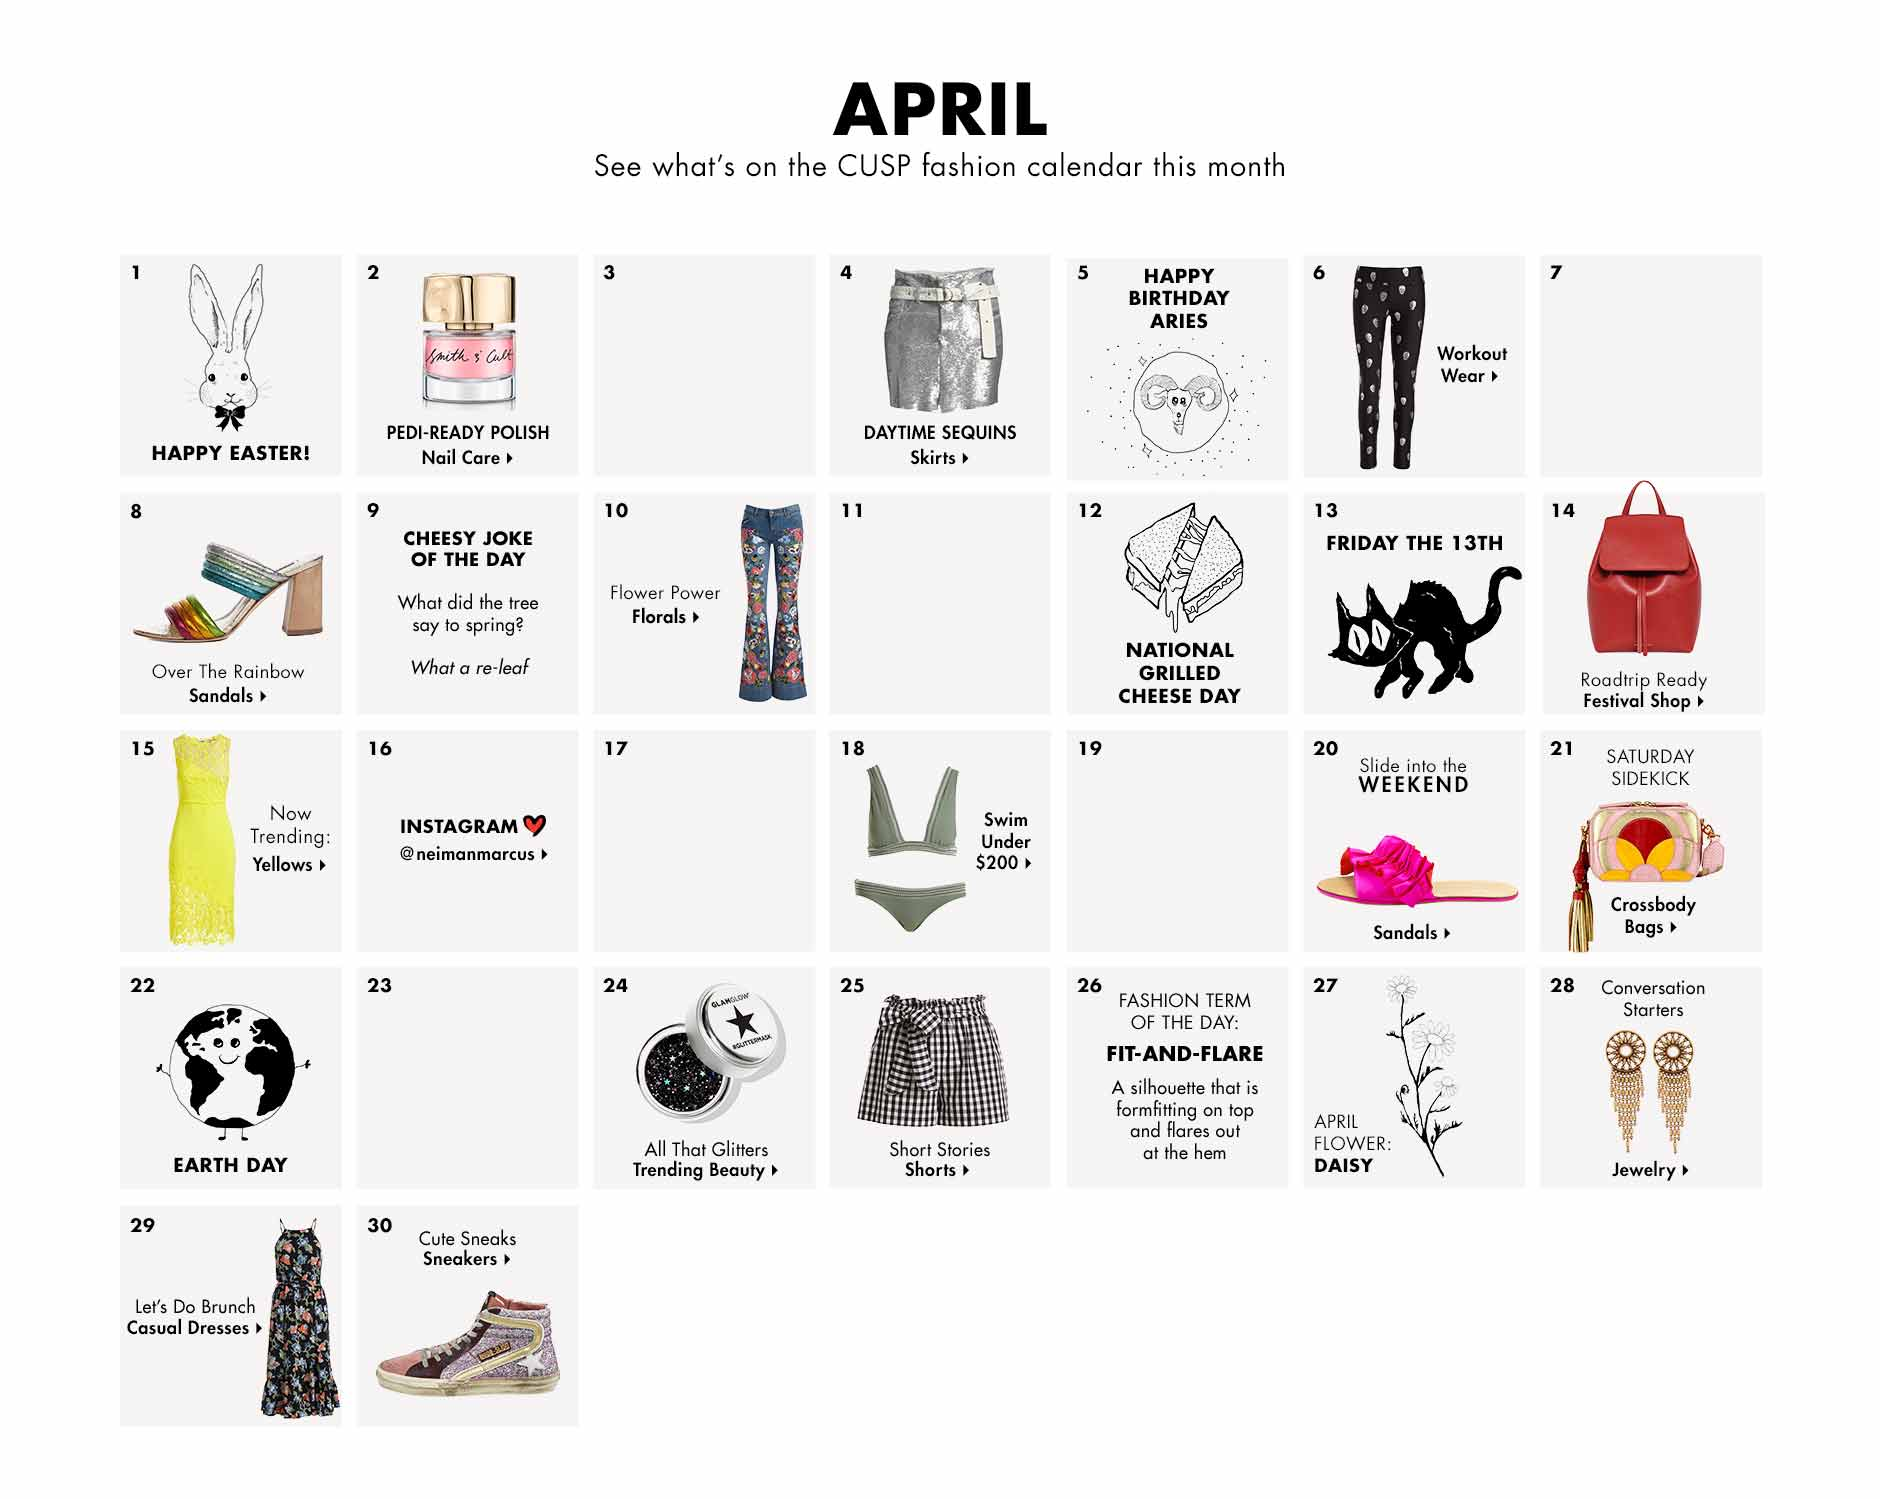 April - See what's on the CUSP fashion calendar this month